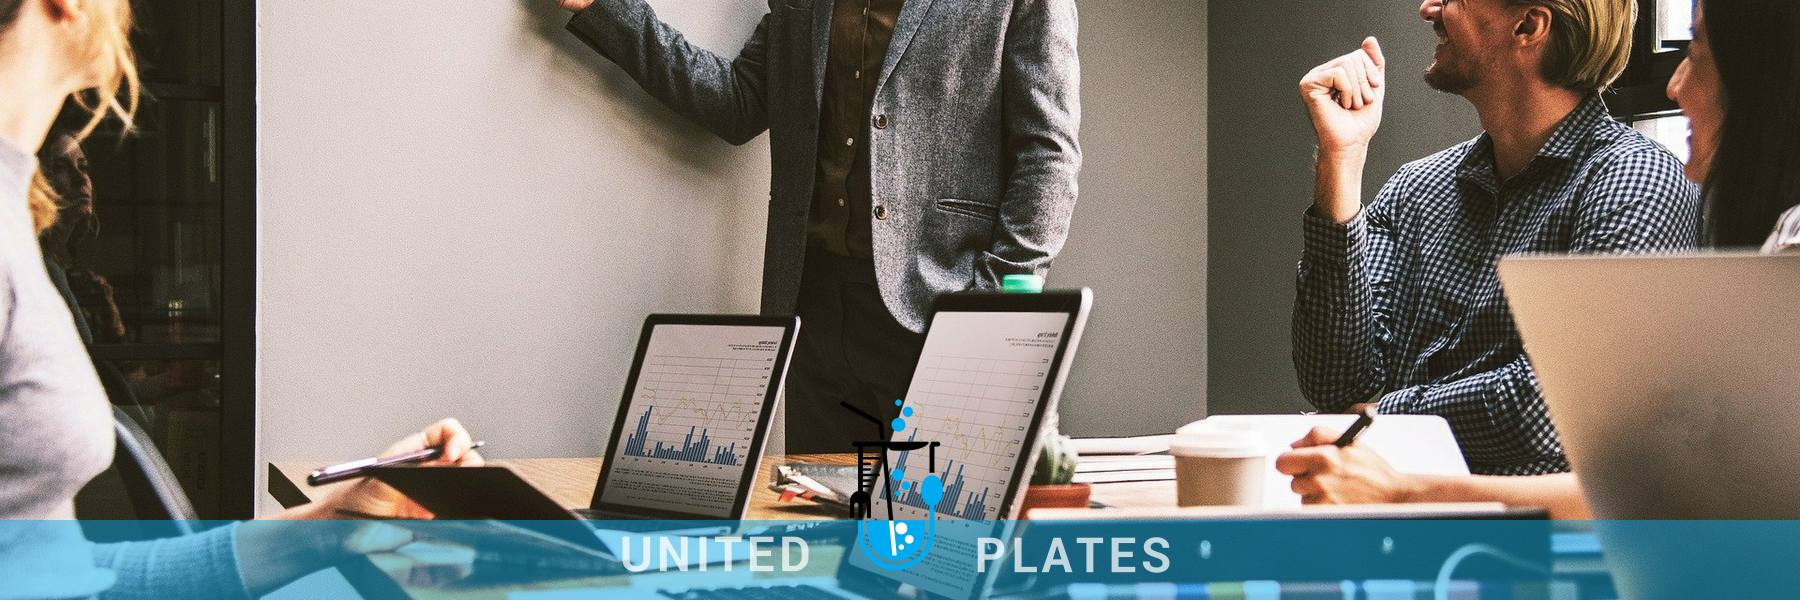 united plates teamwork - An Orchestra of Professional Expertise